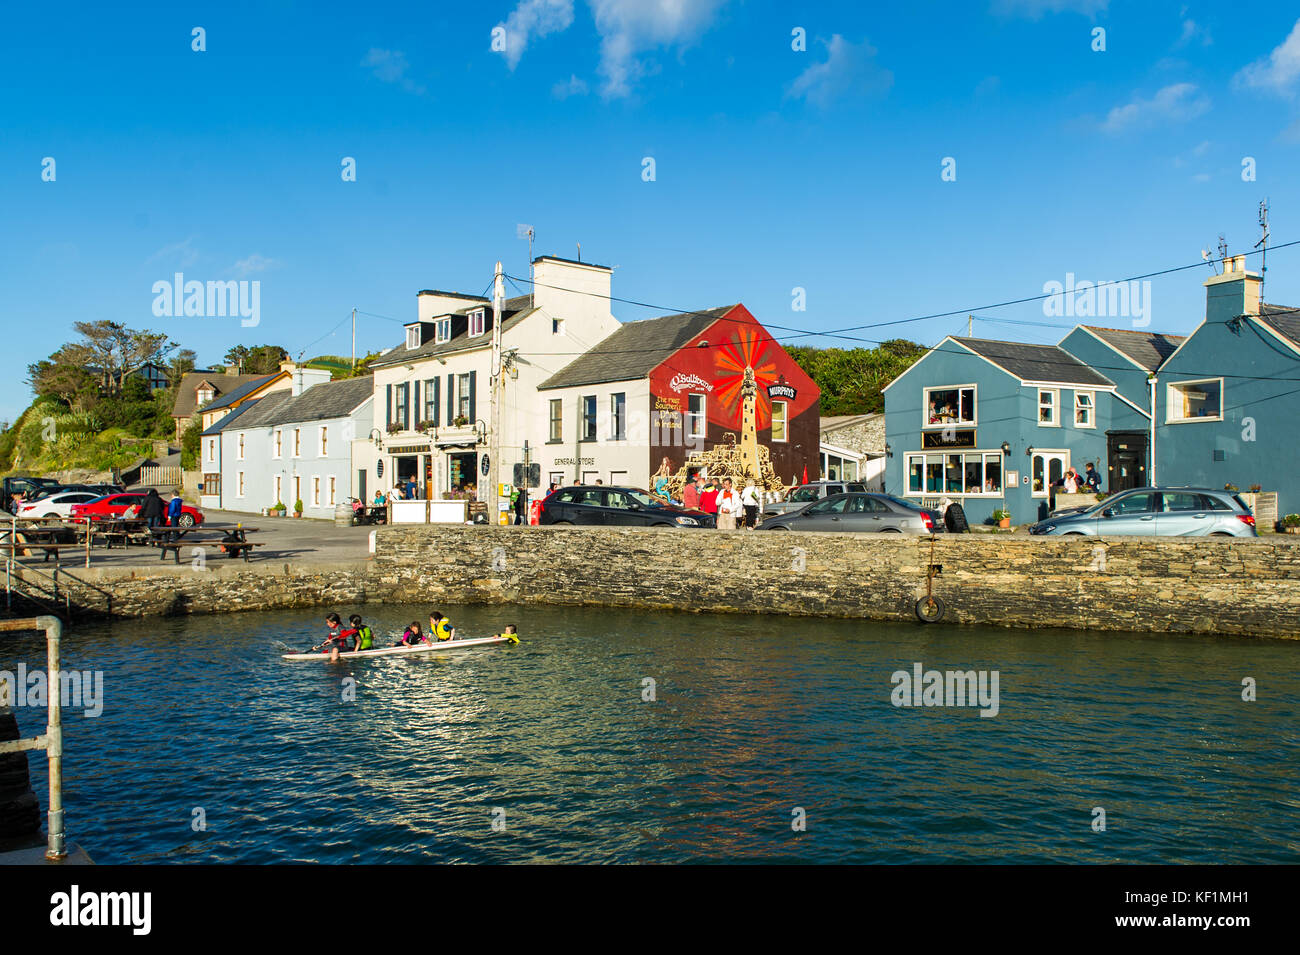 Crookhaven, West Cork, Ireland on a summers day with children playing in water and lots of tourists with copy space. - Stock Image